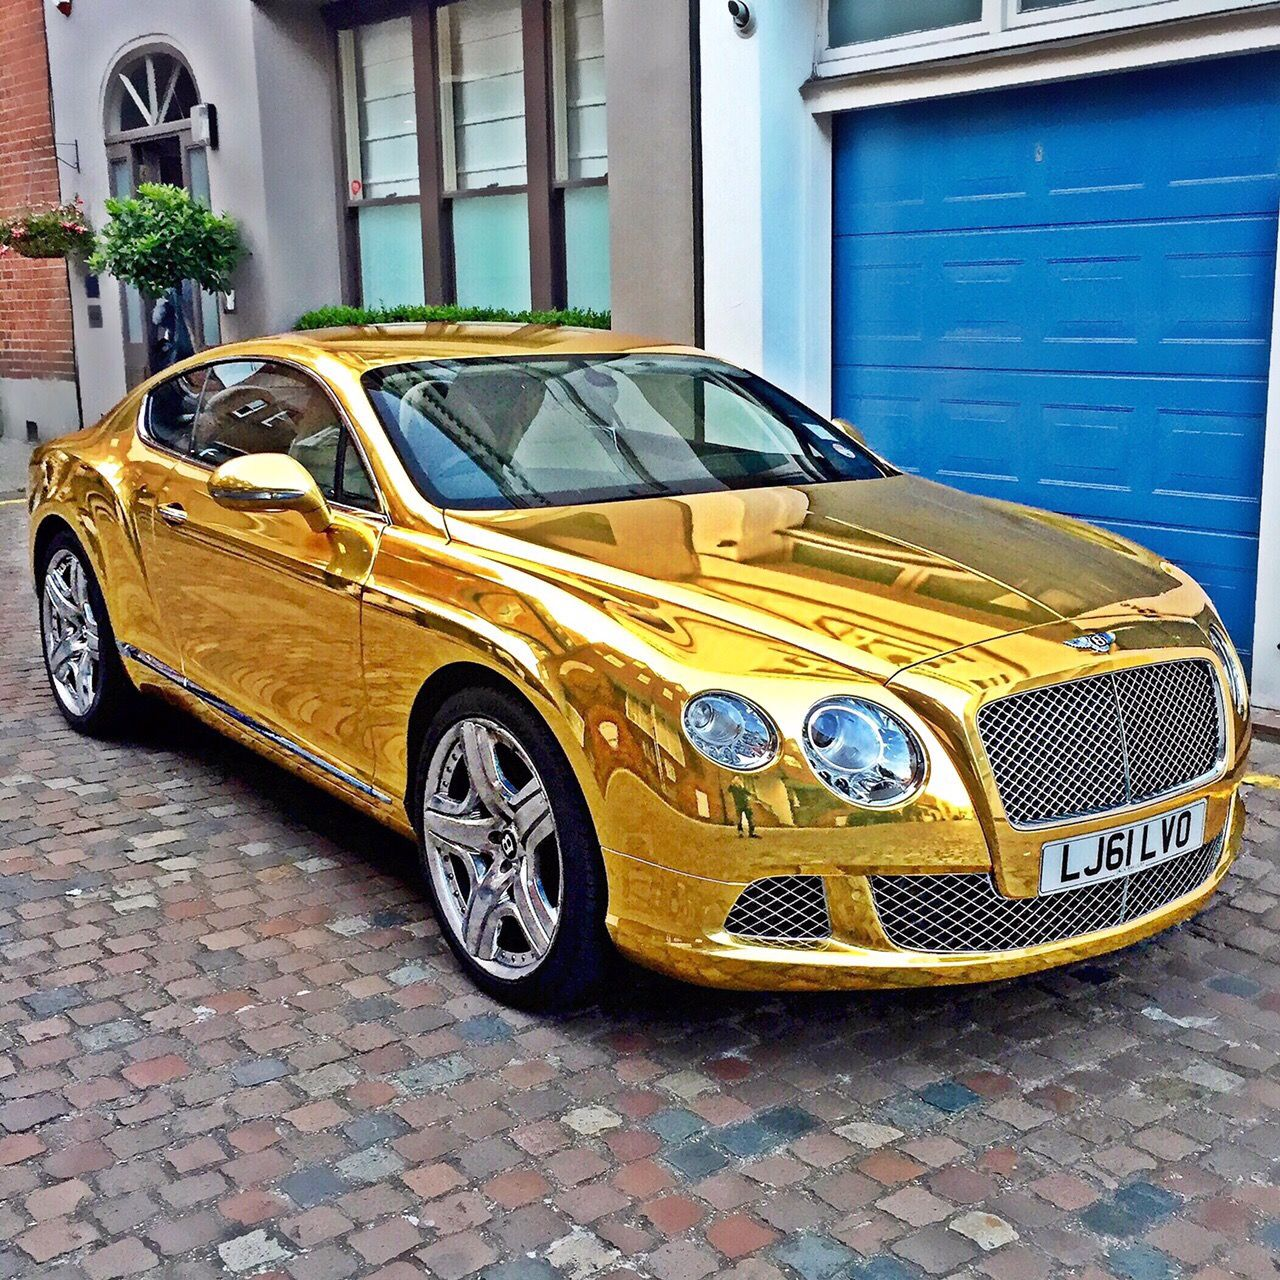 Matte Silver Bentley Awesome: Bentley GT Chrome Gold Wrap